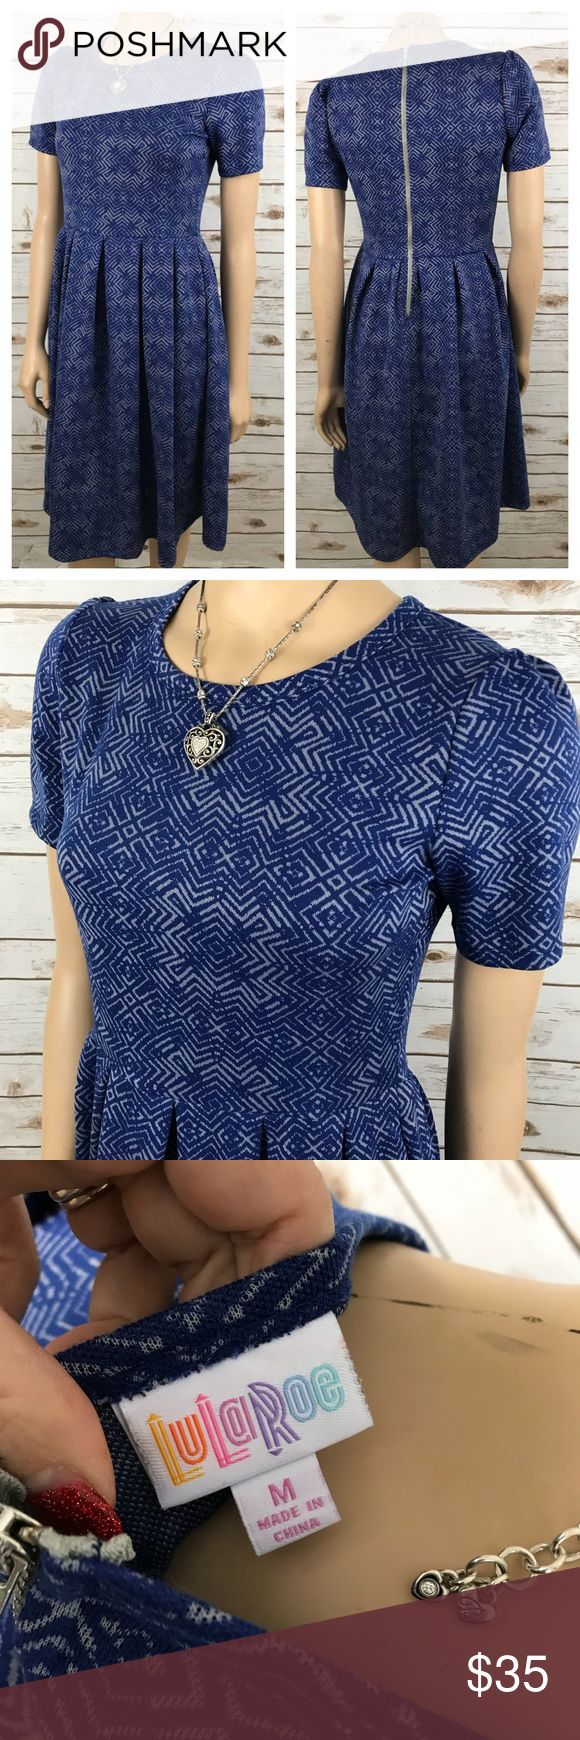 "Lularoe Amelia Dress M Blue Gray Printed Stretch Tag size - M Bust measured across - 17.5"" Length from shoulder to hem - 39"" Fabric Content - See Photo Great used condition! Always open to reasonable offers! LuLaRoe Dresses Midi"